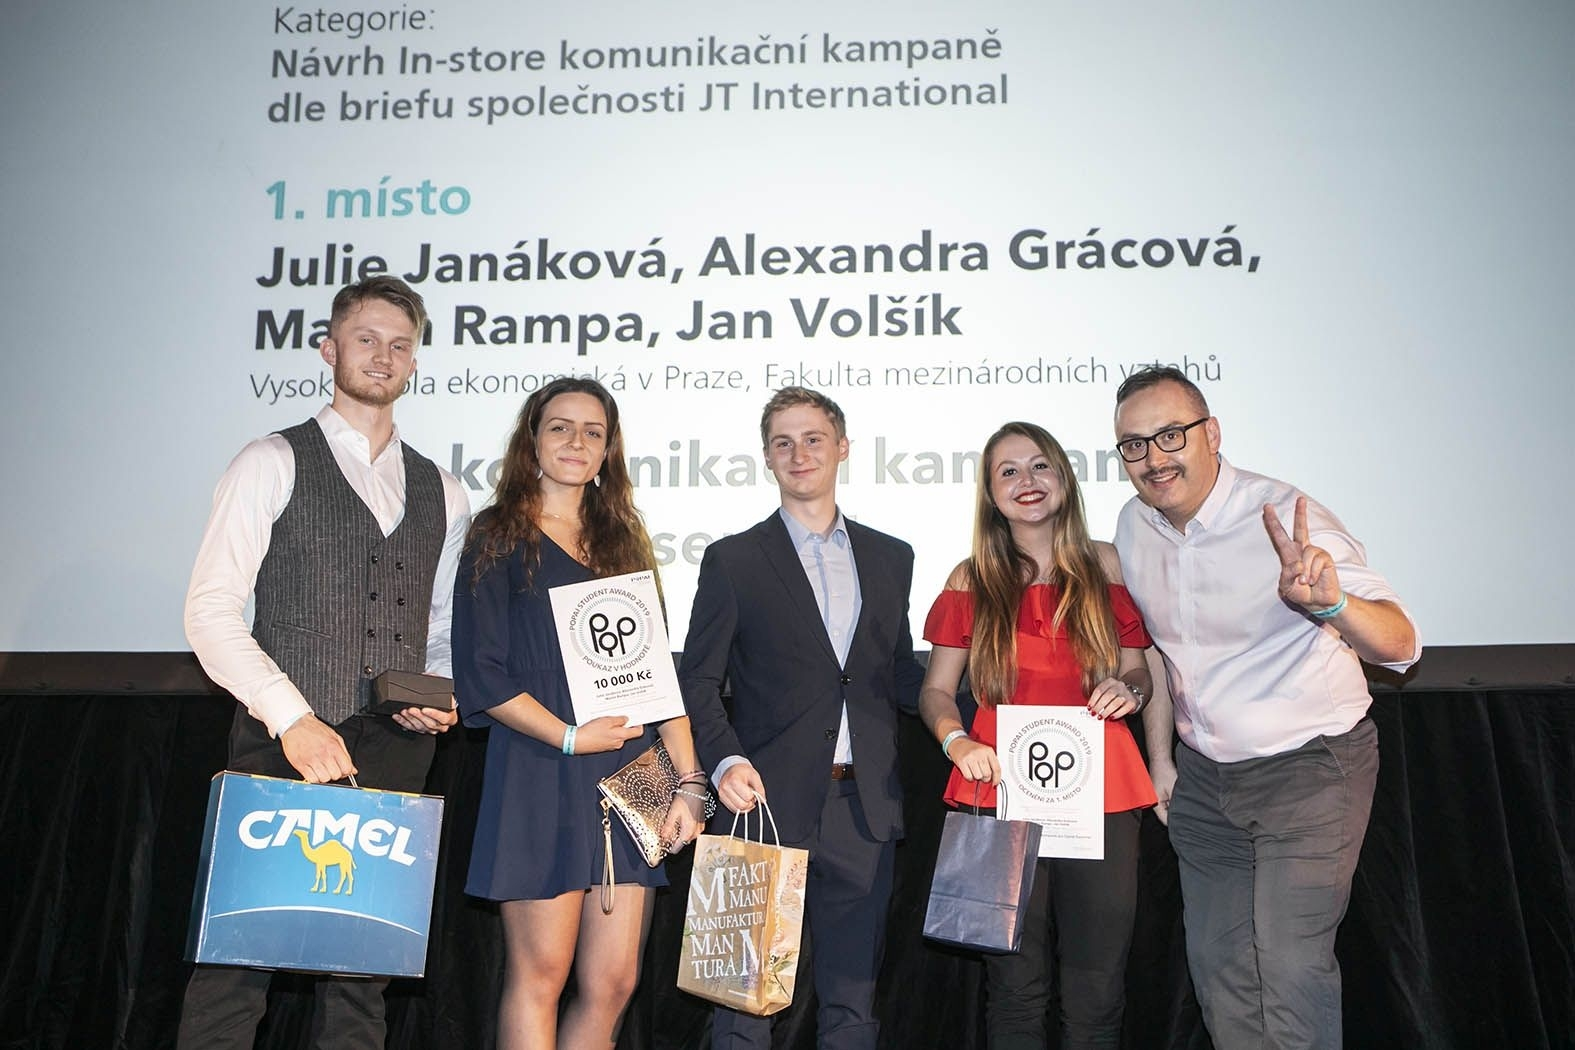 Students of Retail Marketing won the POPAI STUDENT AWARDS 2019 Competition